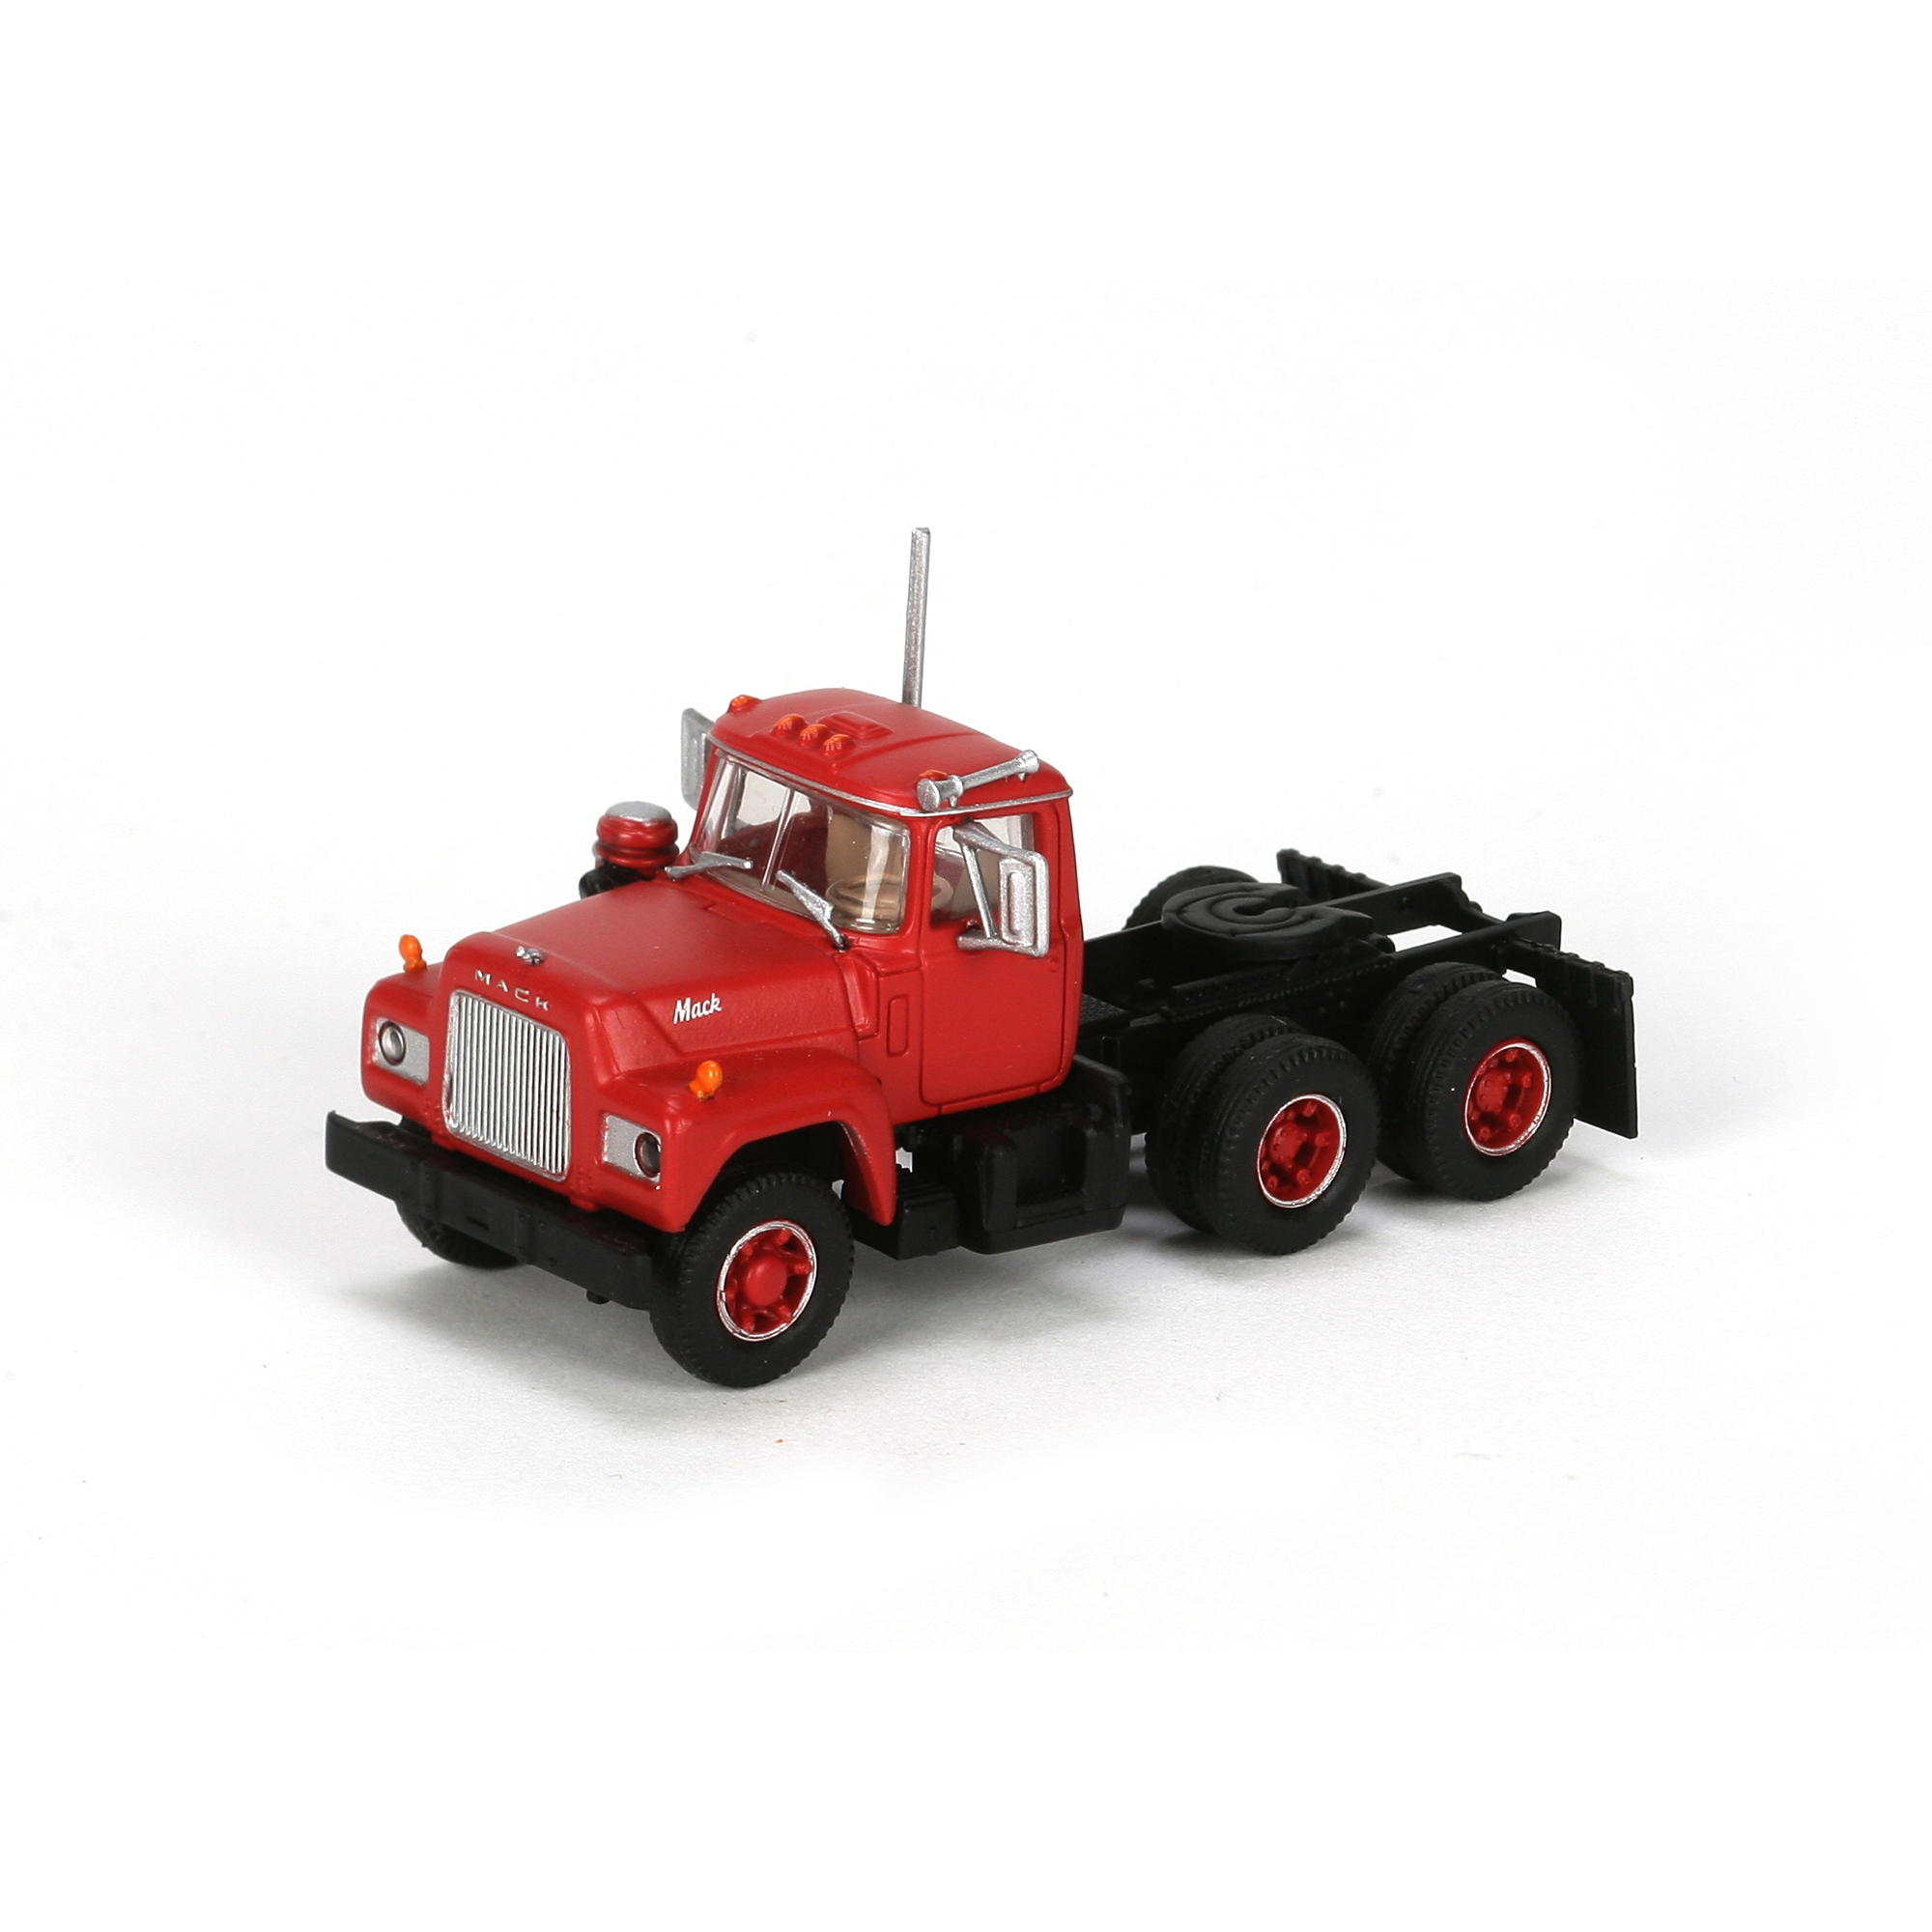 Athearn N Scale 3 Axle Tractor : Ho rtr mack r tractor w axle red ath athearn trains